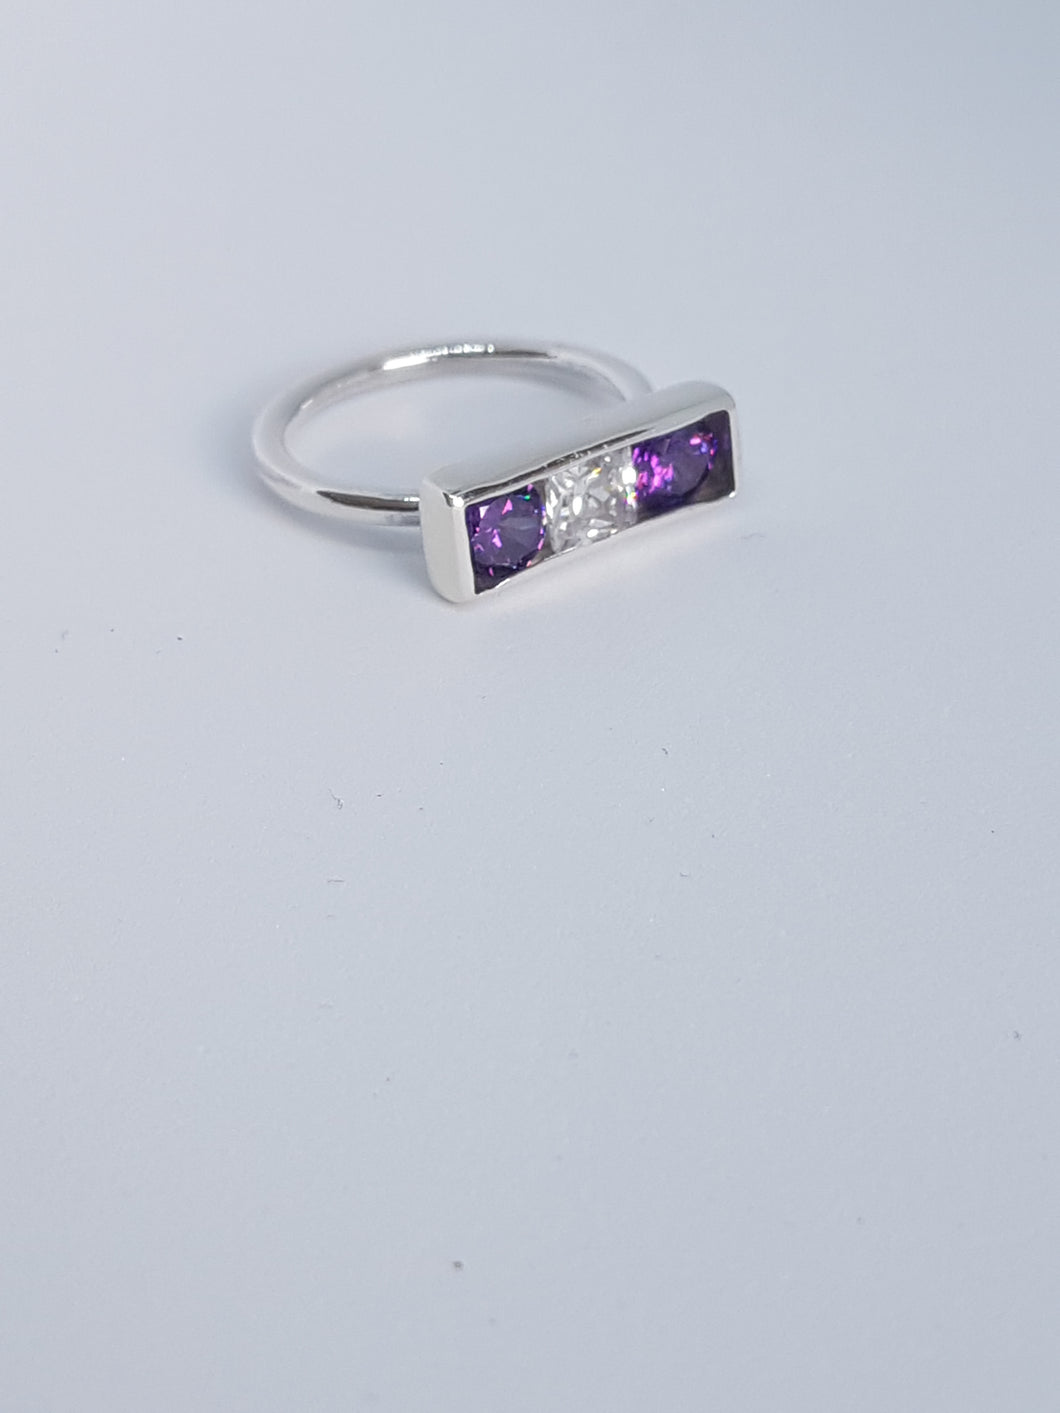 Sterling silver ring with purple& clear cubic zirconia